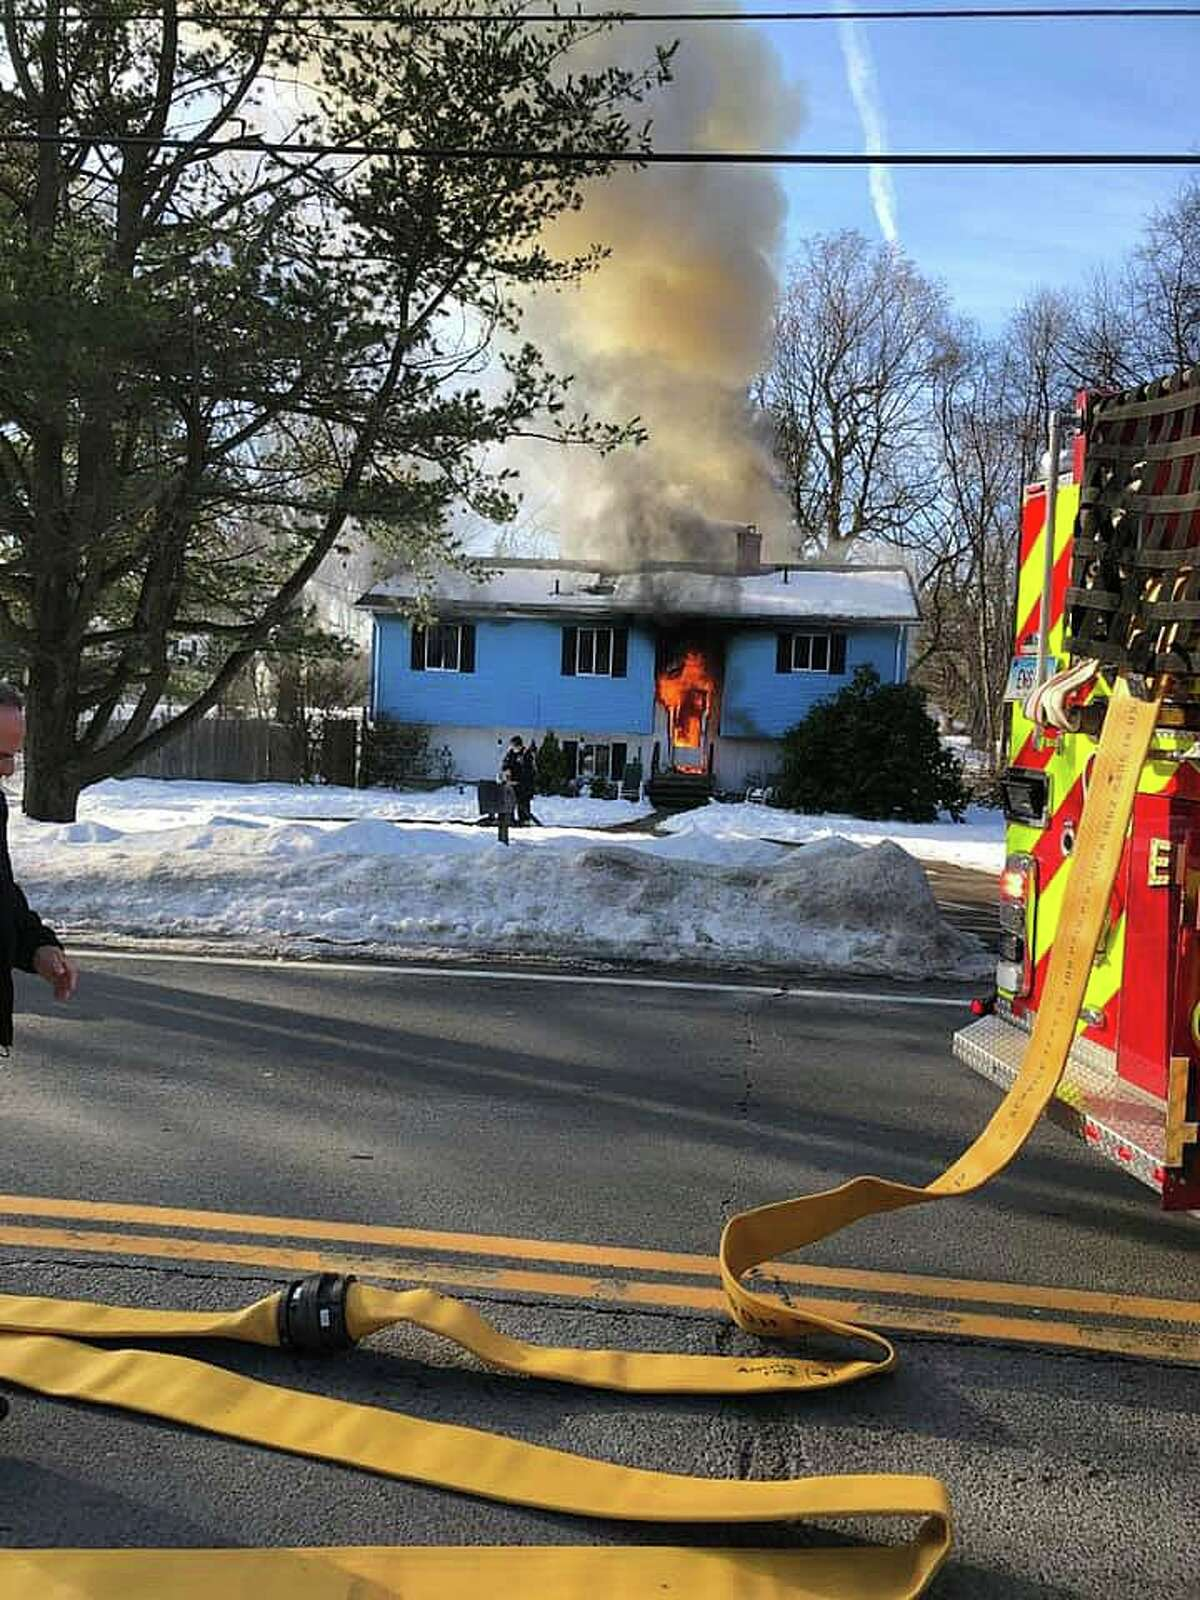 Crews extinguished a fire at a West Main Street home in Cheshire, Conn., on Wednesday, Dec. 23, 2020.